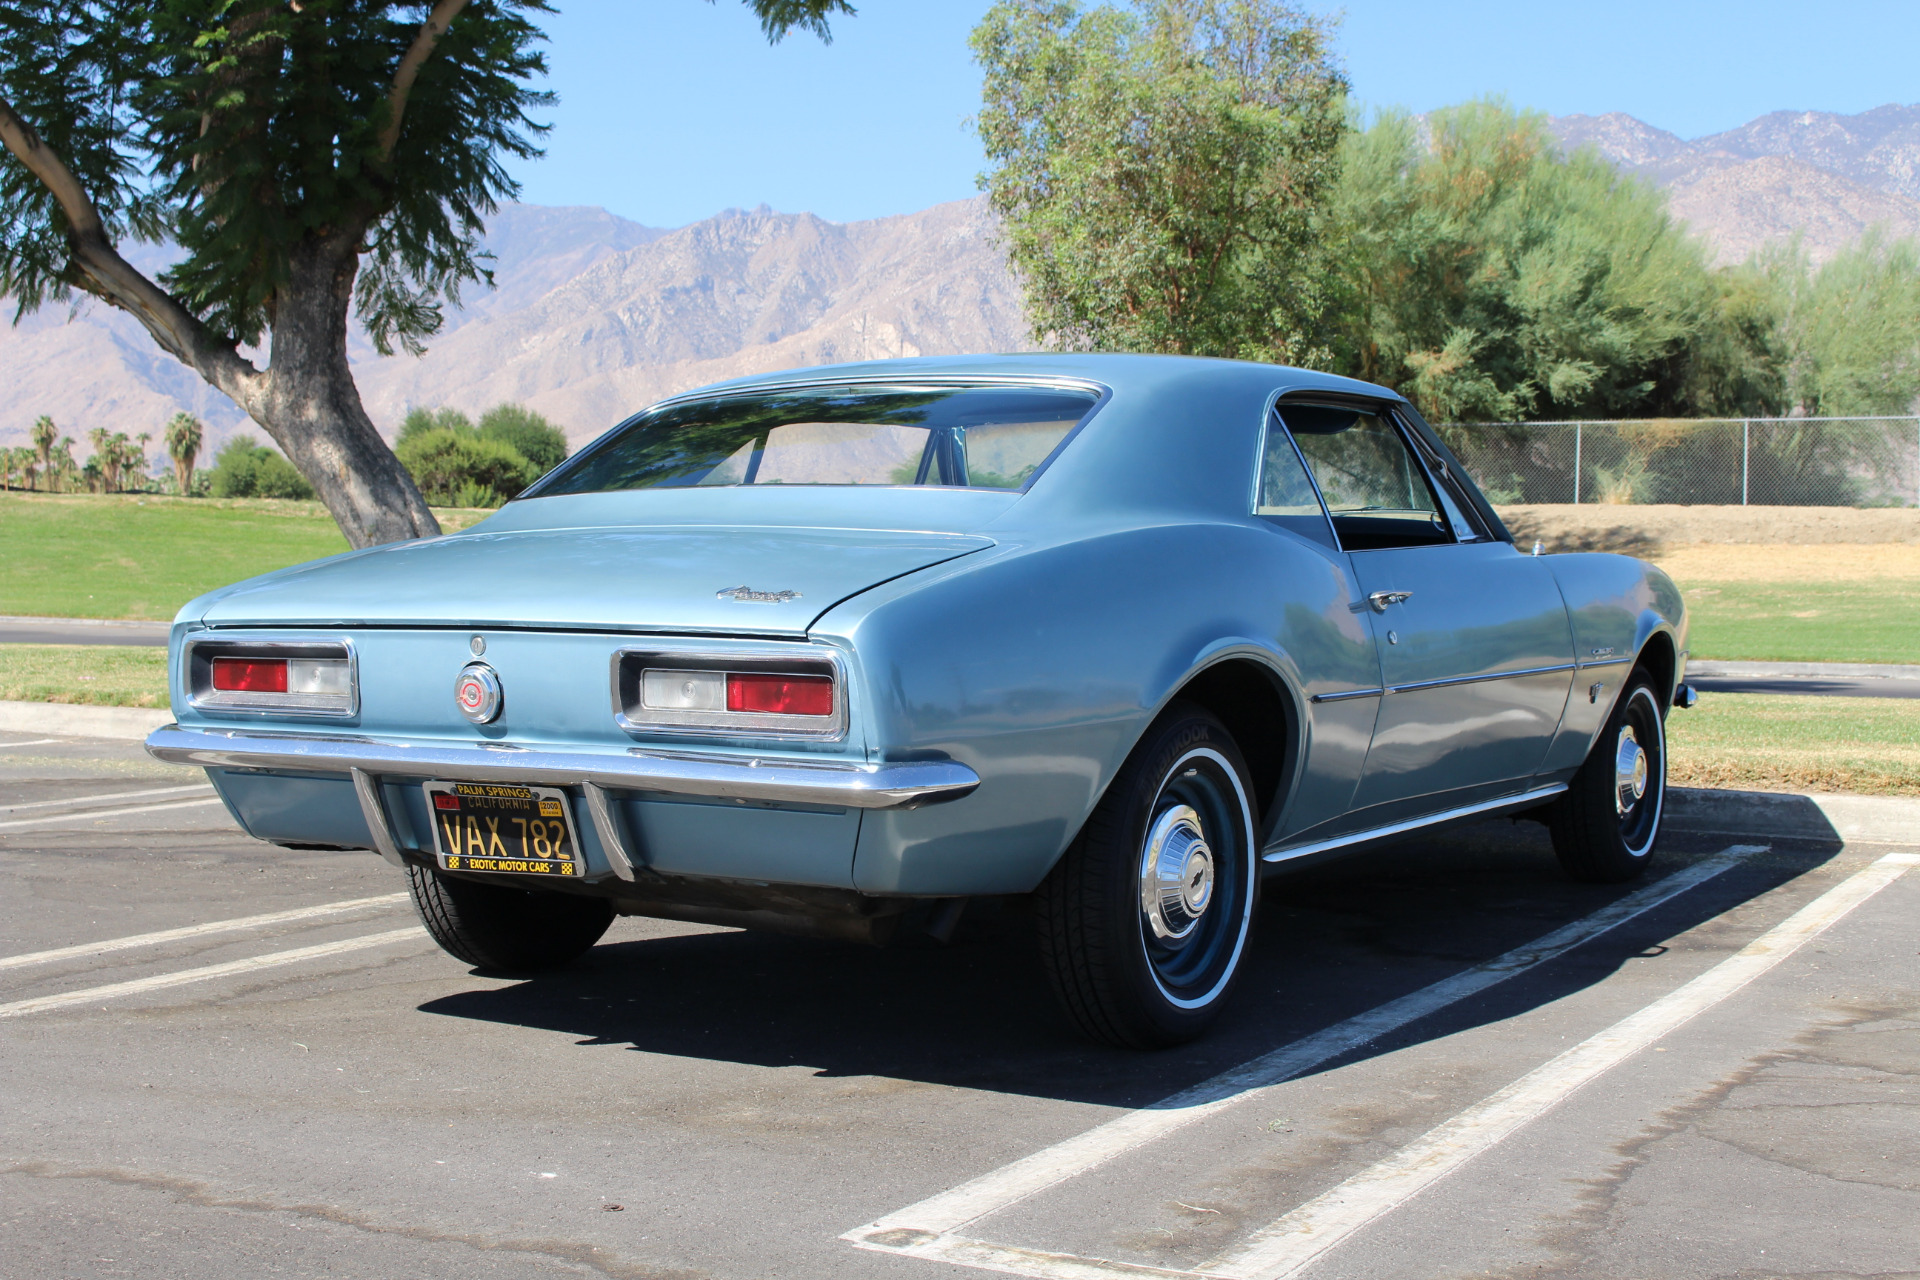 Used Cars For Sale In Palm Springs Ca